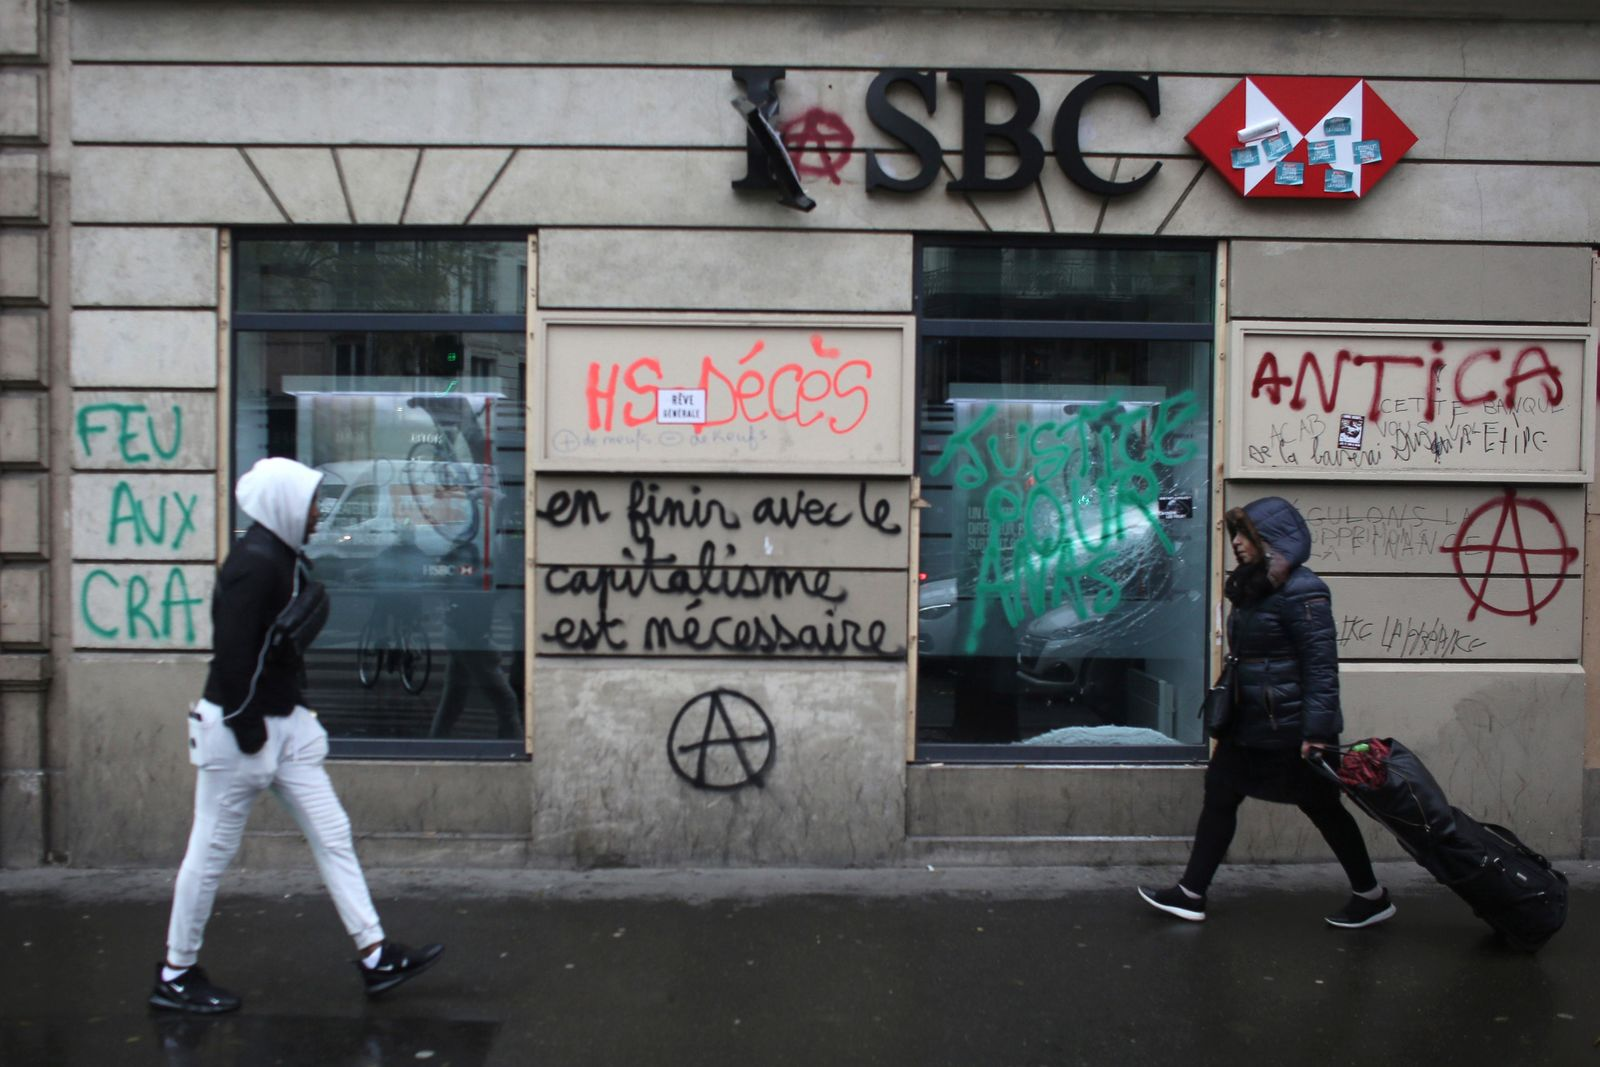 People walk past a vandalized bank after Thursday's violence, Friday, Dec. 6, 2019 in Paris.(AP Photo/Rafael Yaghobzadeh)